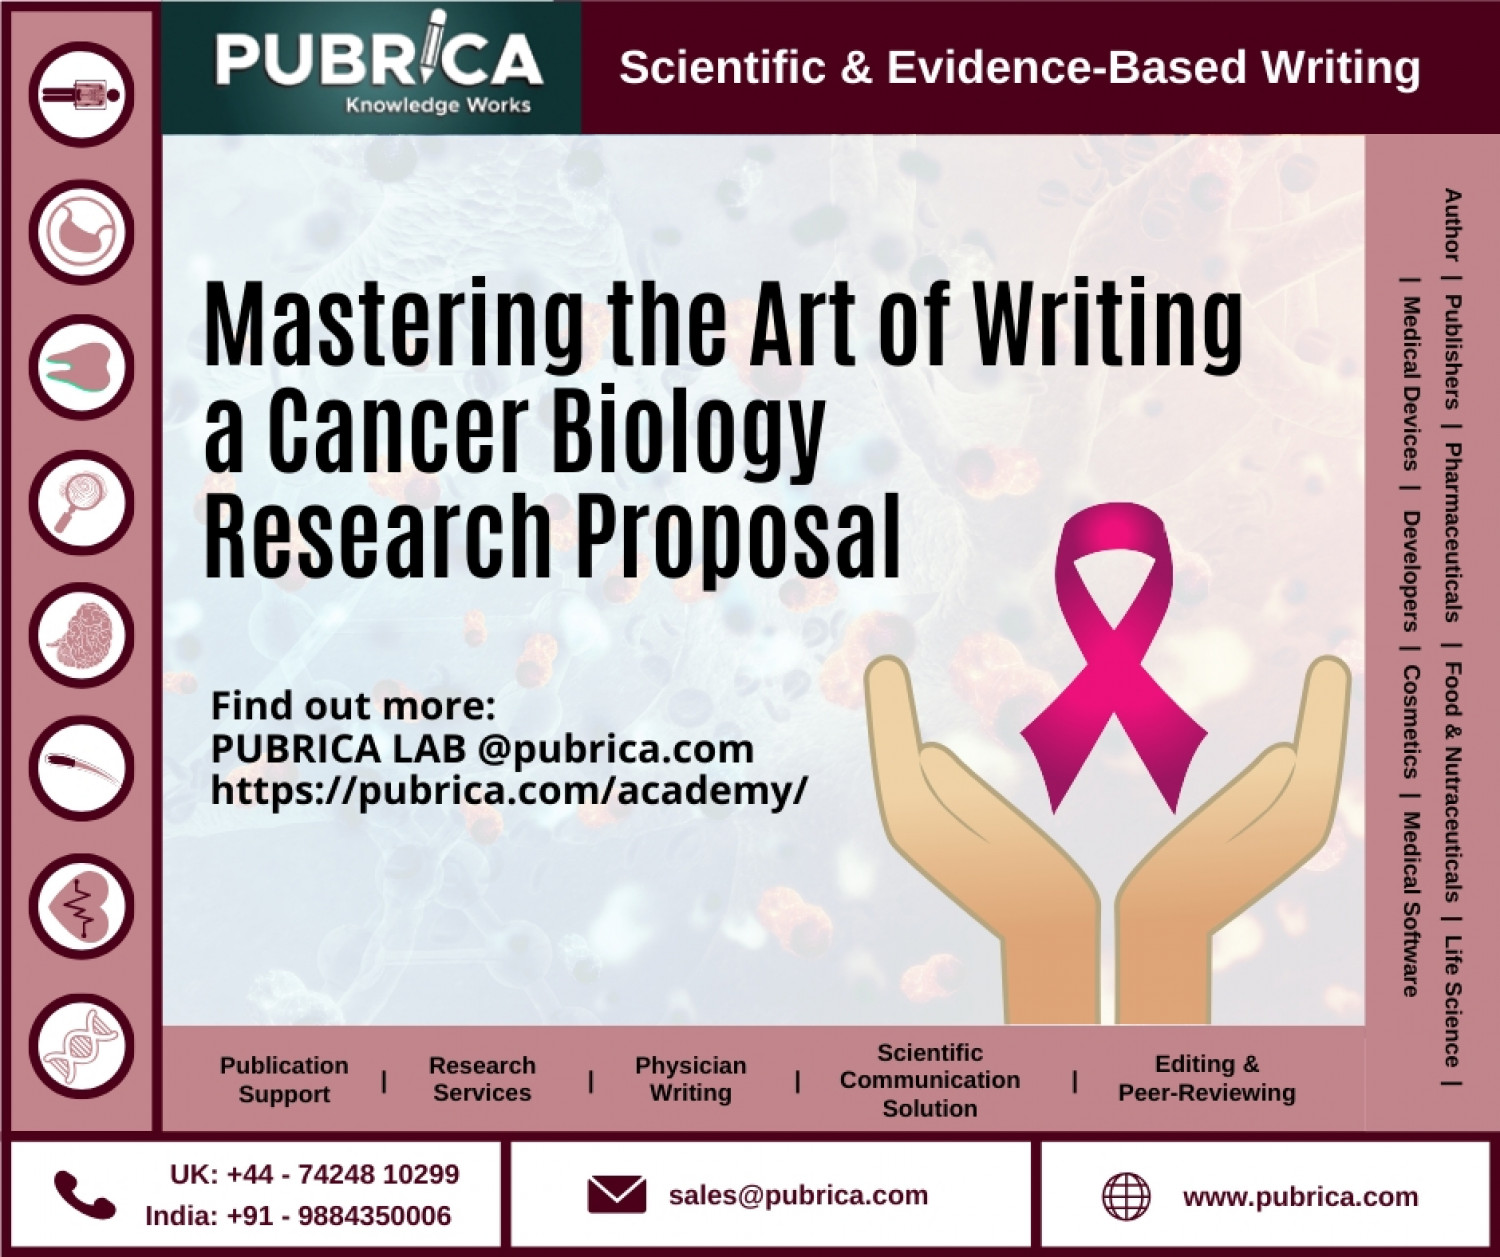 Scientific Cancer biology research proposal writing help: Pubrica.com Infographic